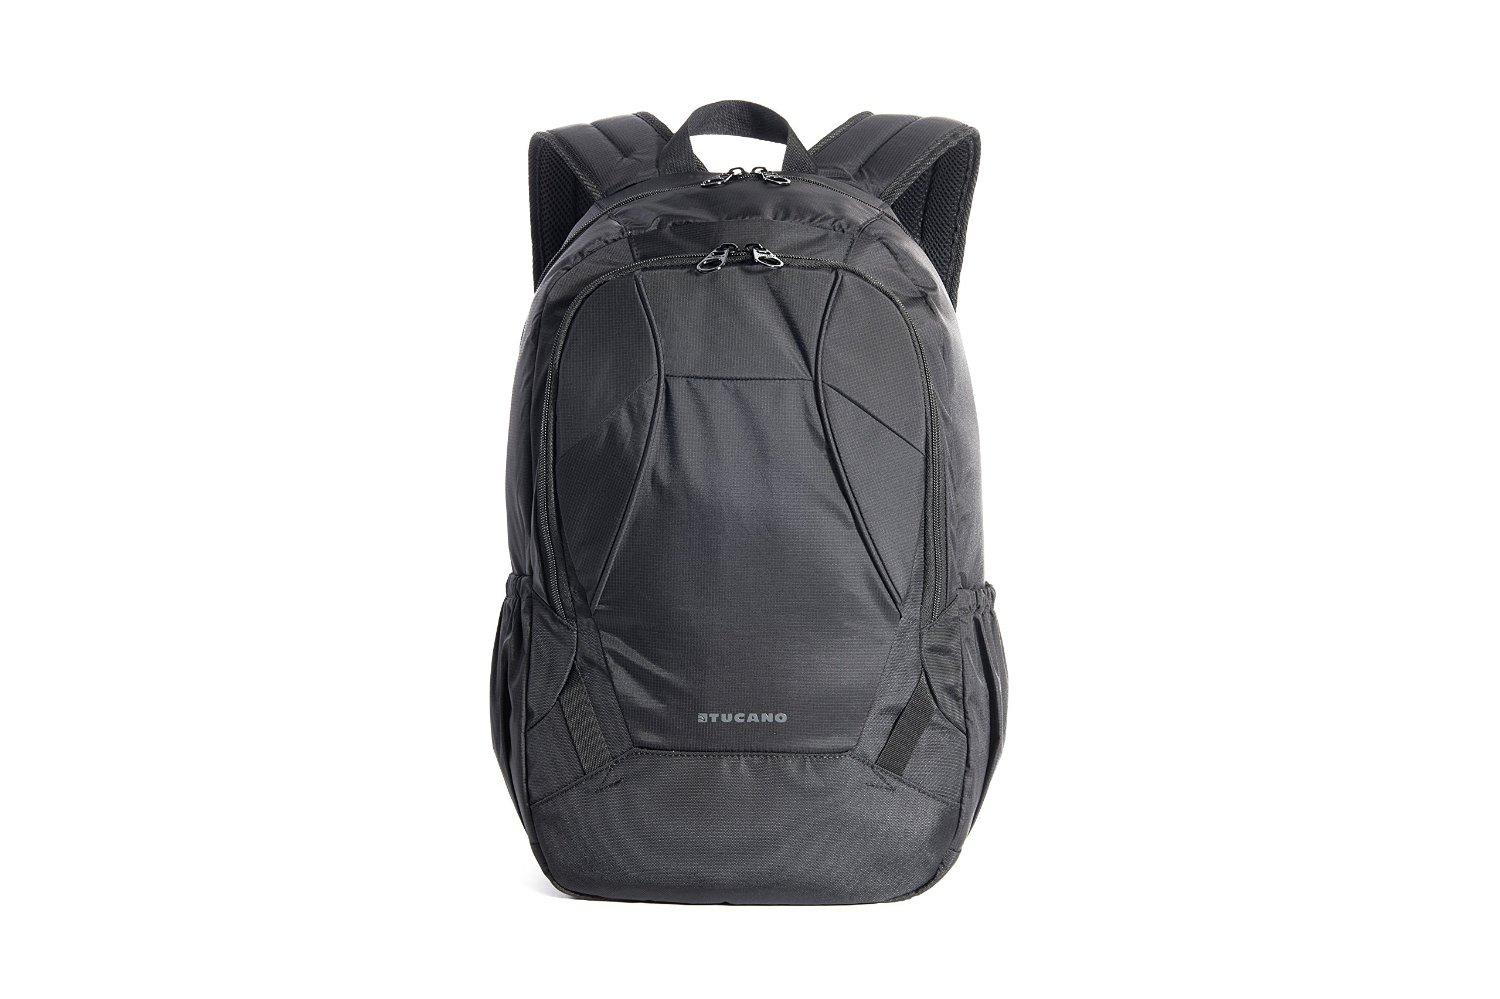 "TUCANO DOPPIO BACKPACK FOR NOTEBOOK 15.6"" AND MACBOOK PRO 15"" RETINA"